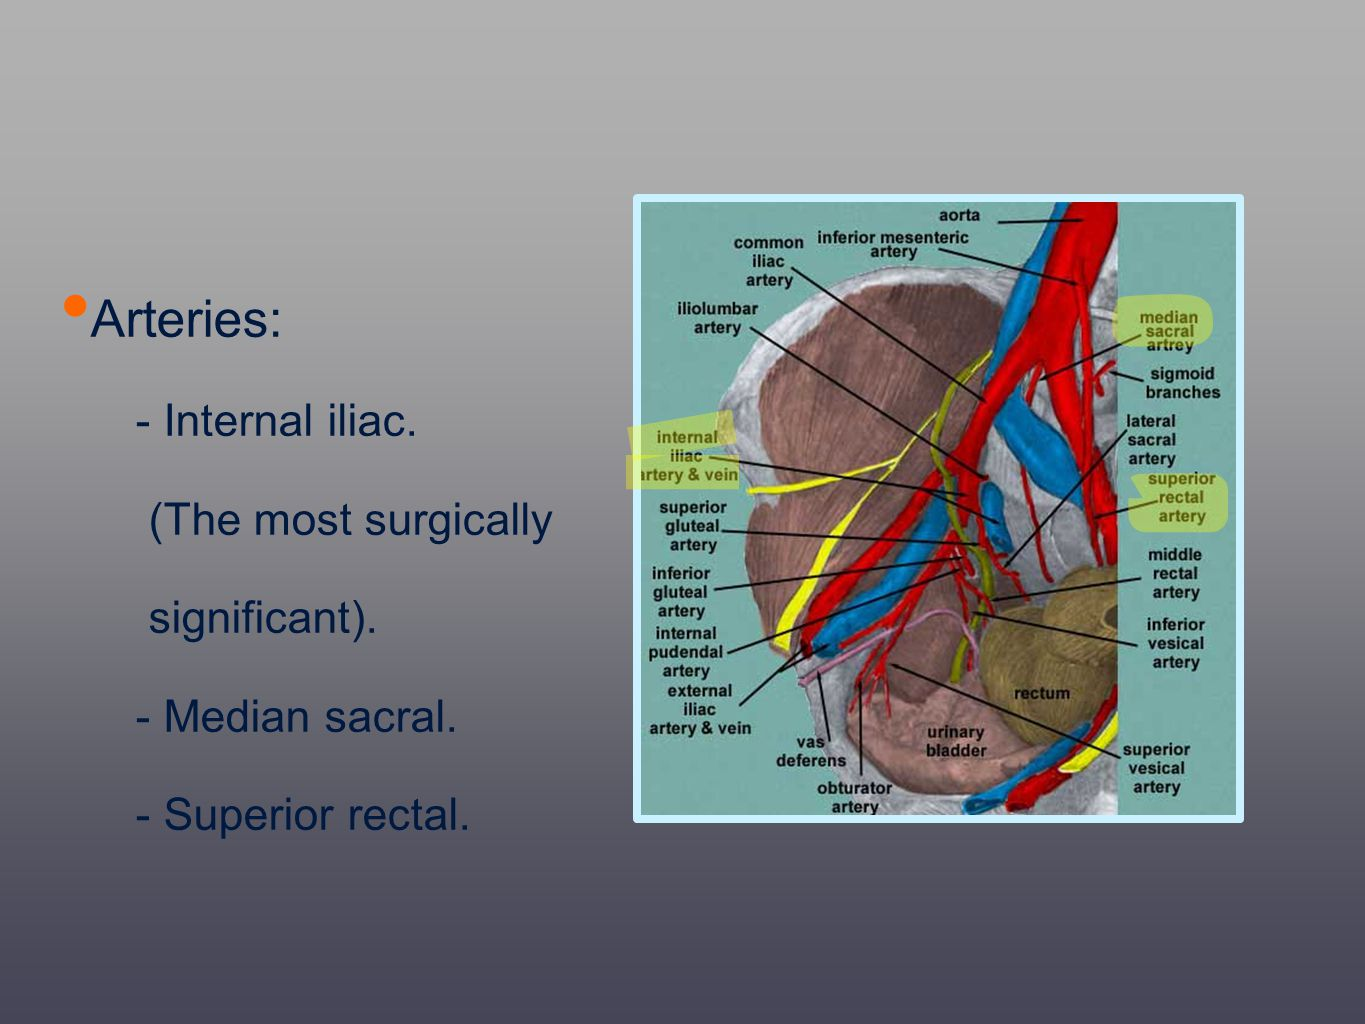 Arteries: - Internal iliac. (The most surgically significant).